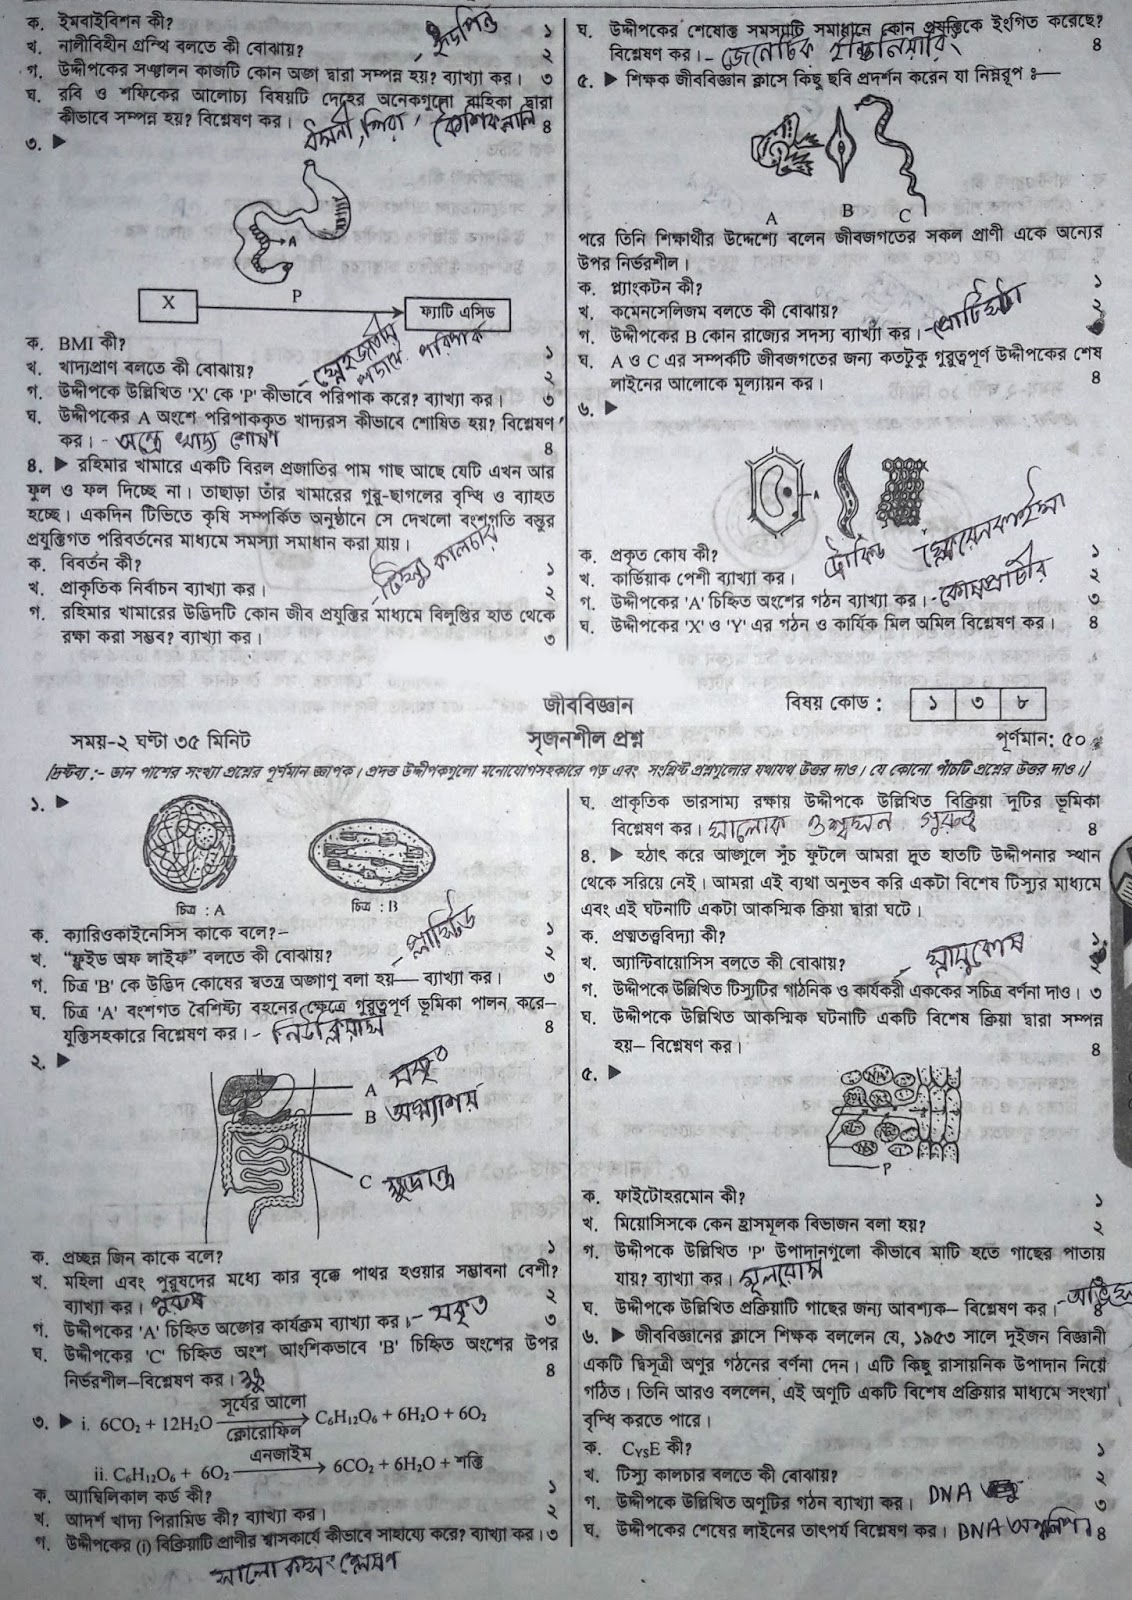 ssc biology suggestion, exam question paper, model question, mcq question, question pattern, preparation for dhaka board, all boards